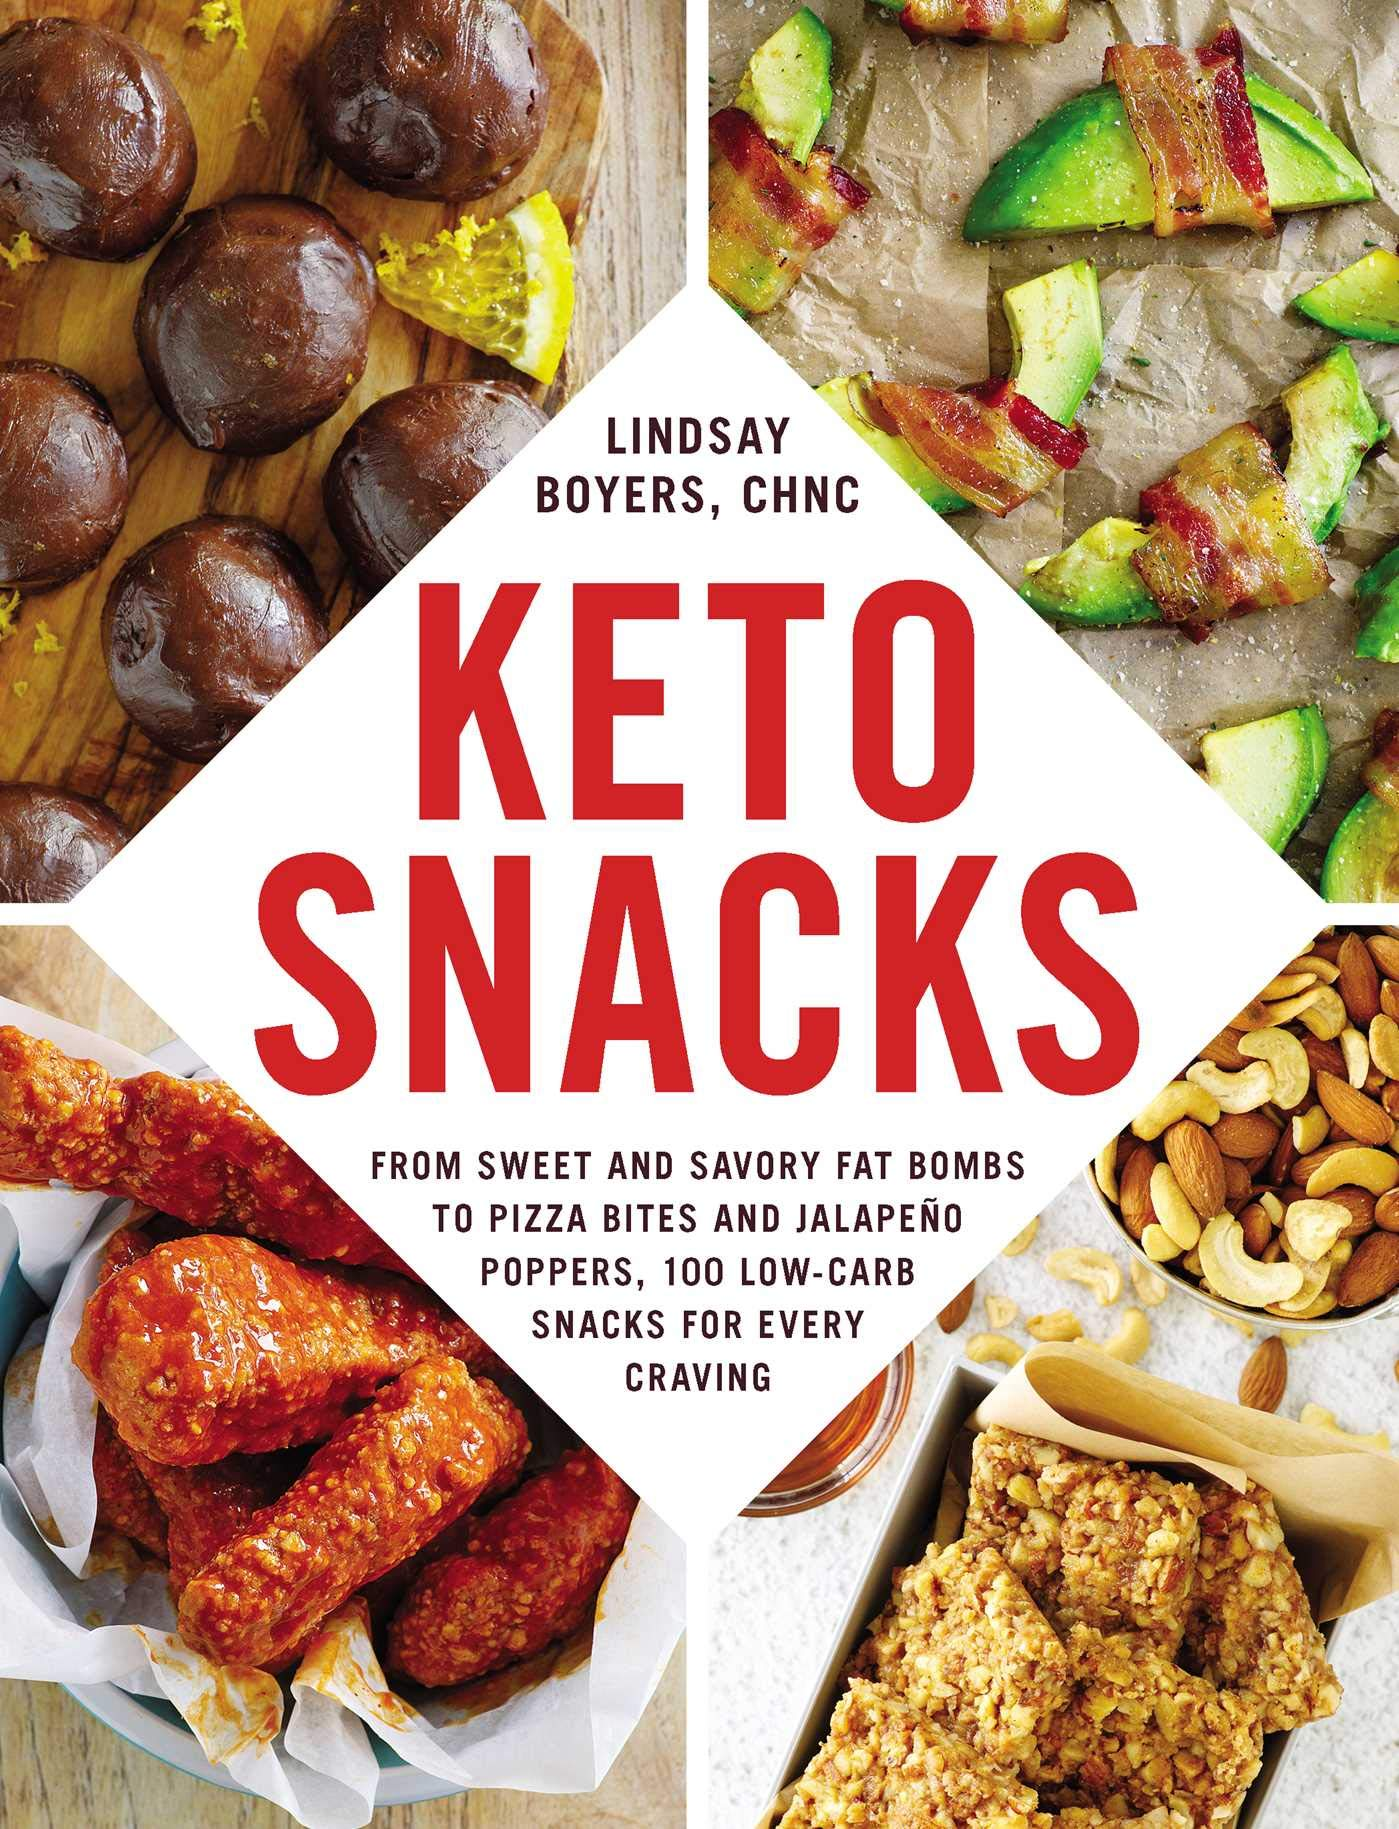 what is a good snack for keto diet